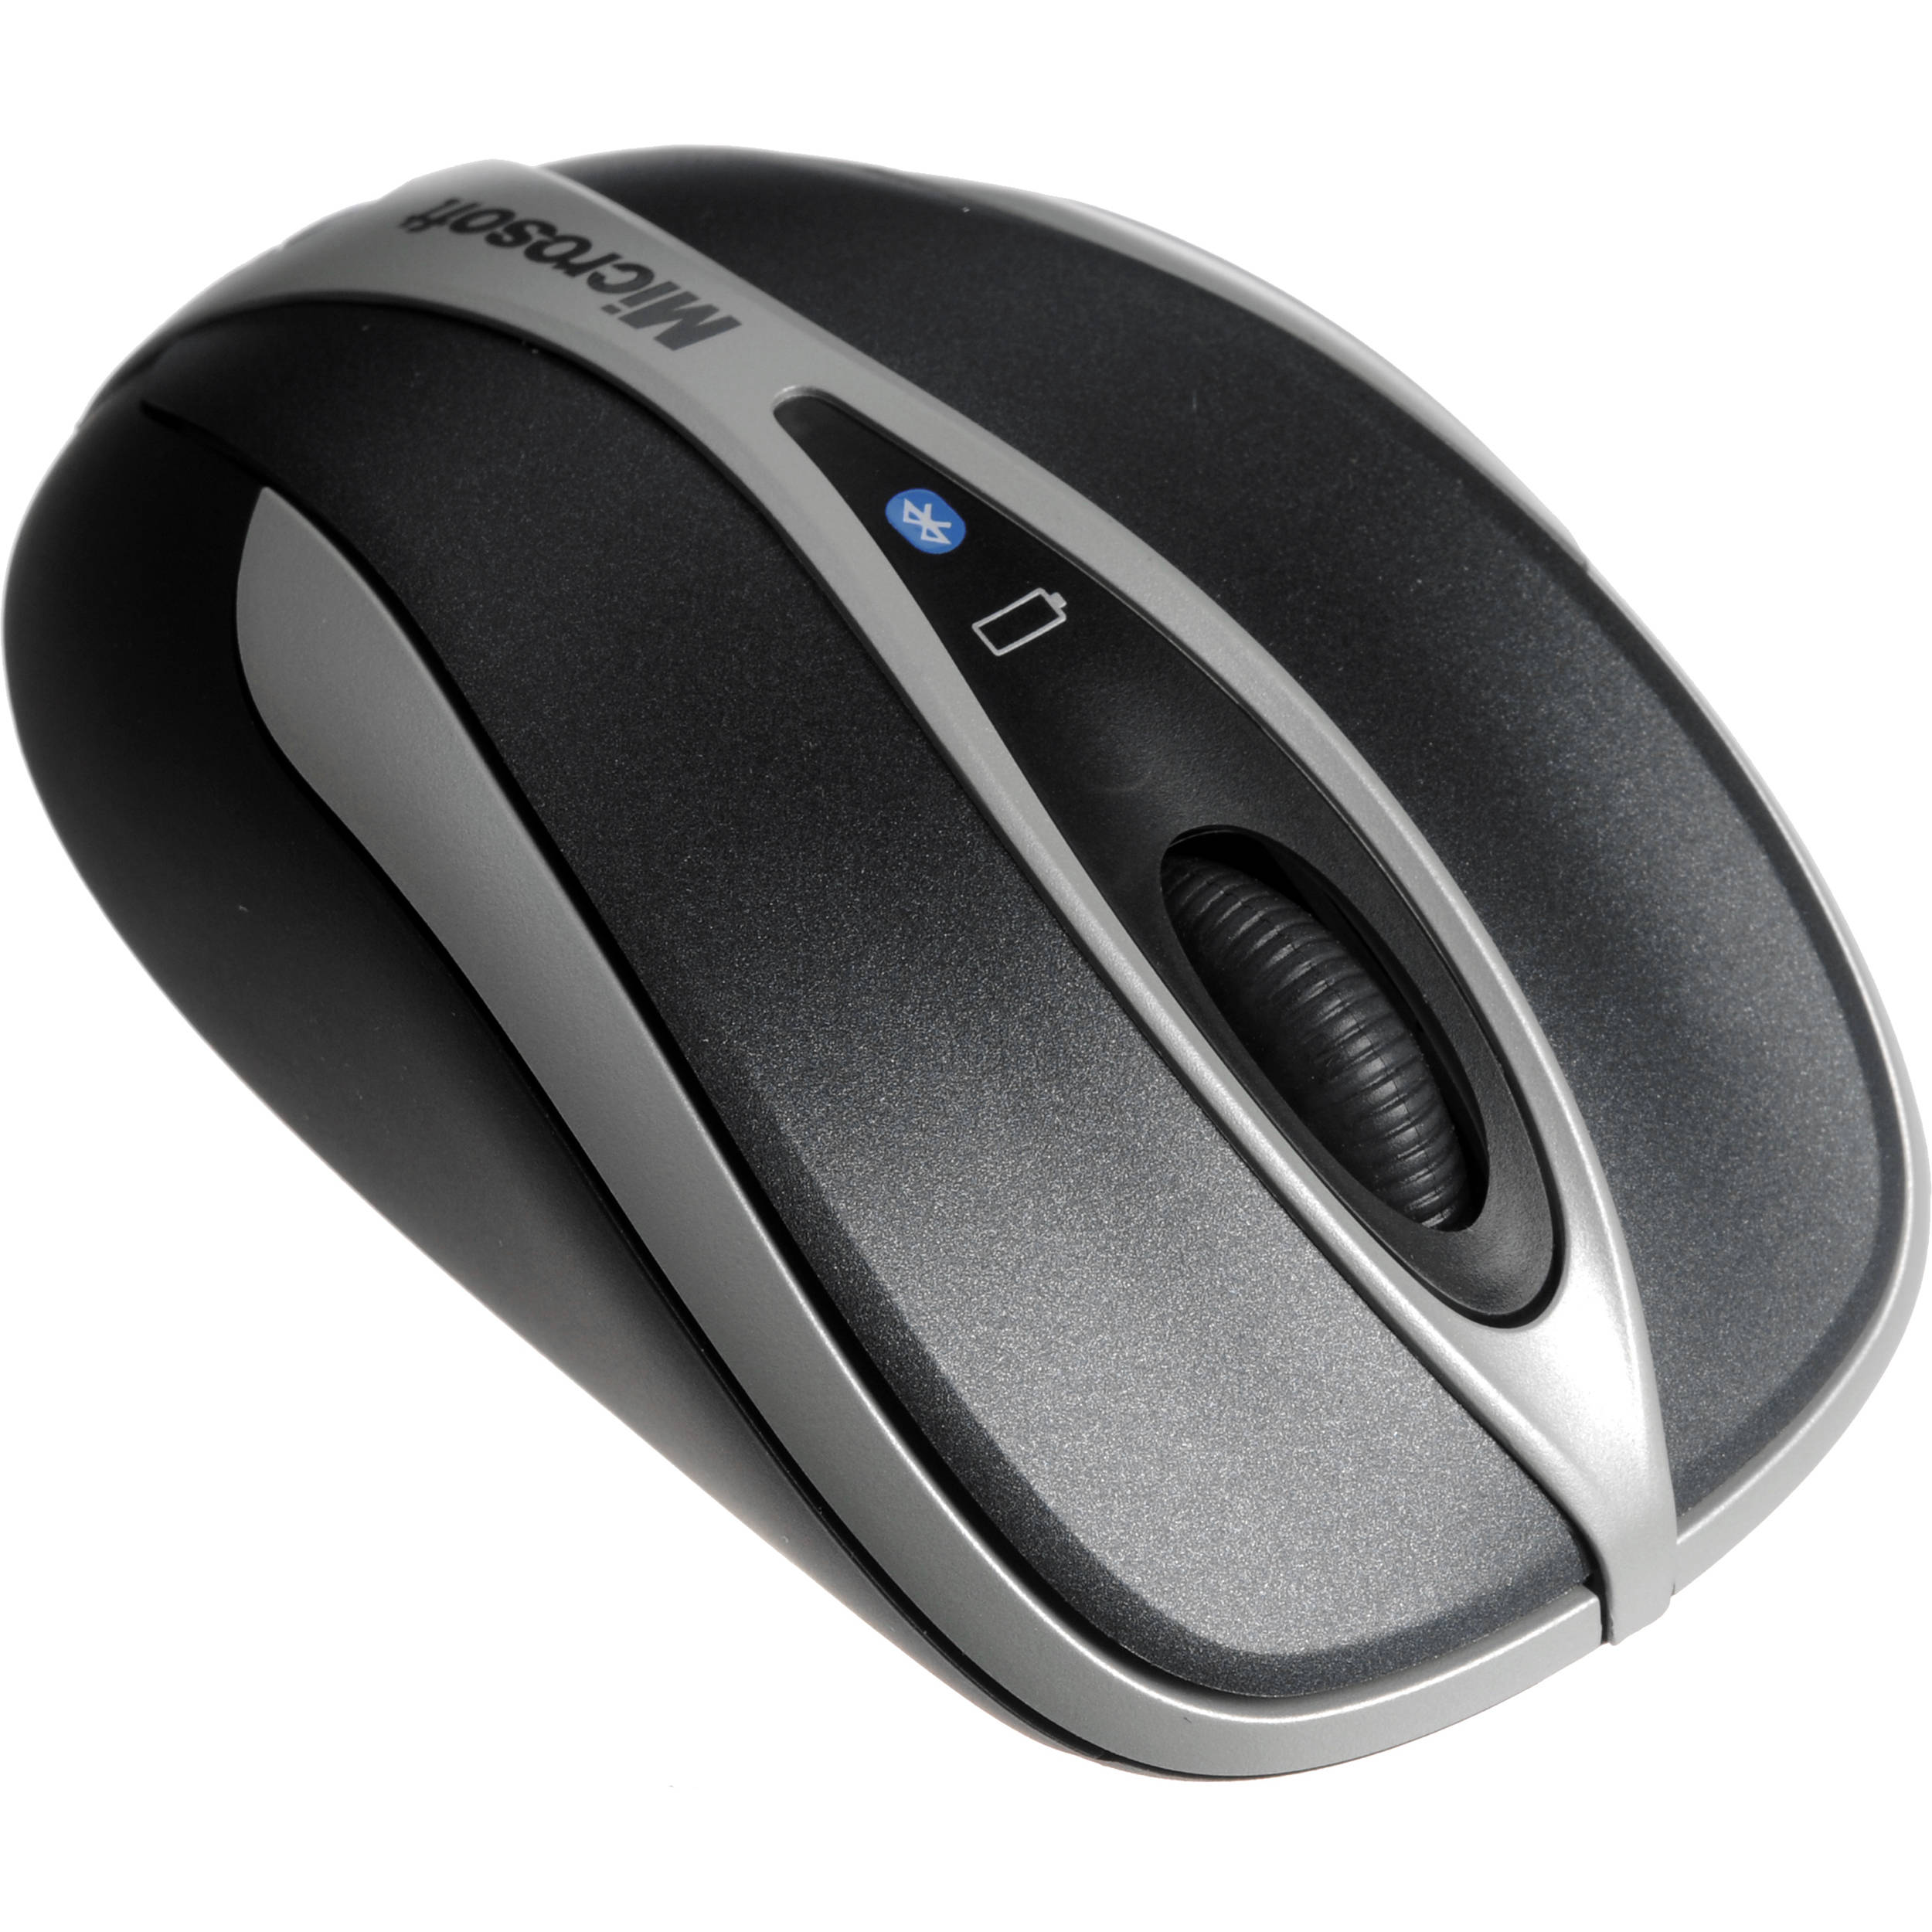 MICROSOFT NOTEBOOK MOUSE 5000 DRIVERS FOR MAC